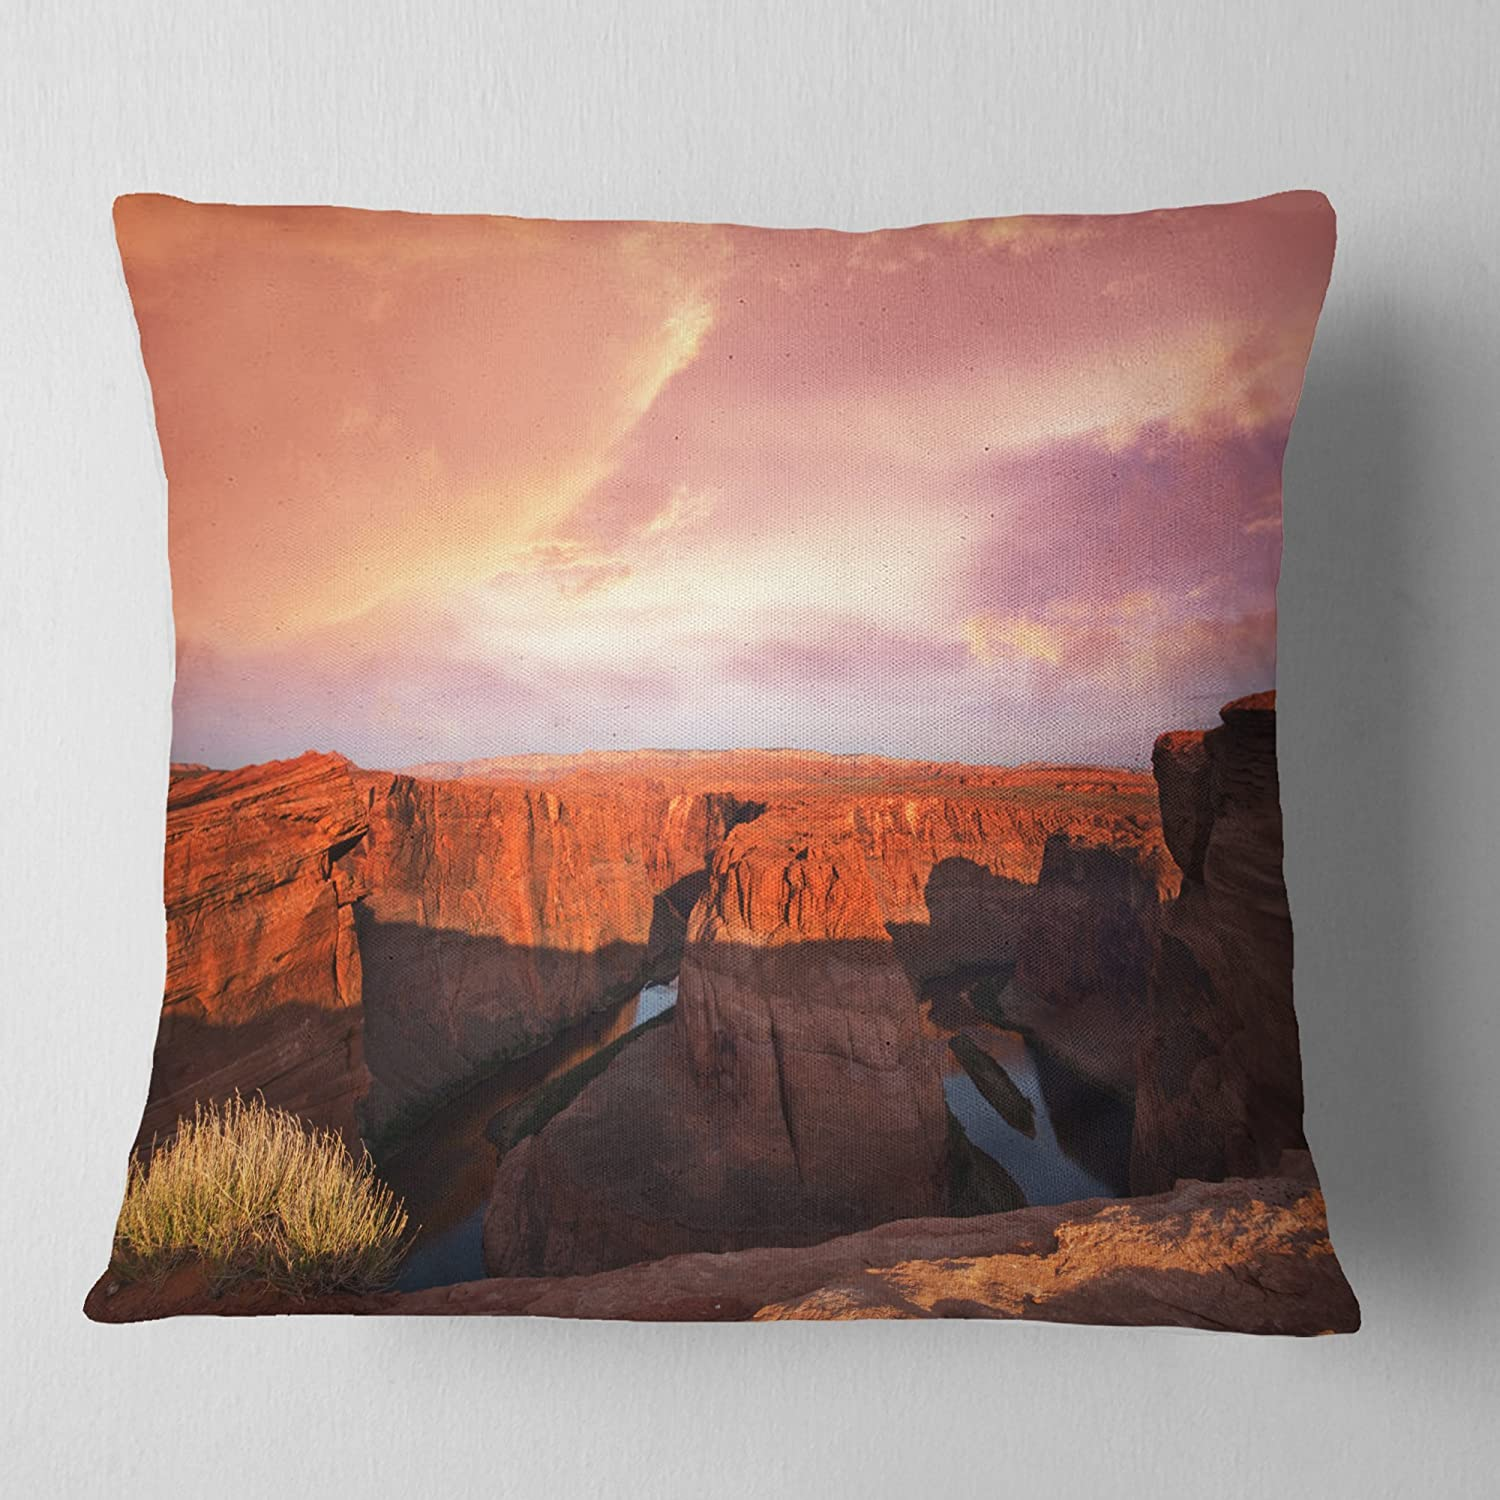 Designart CU12533-18-18 Horse Shoe Bend Under Cloudy Sky' Landscape Printed Cushion Cover for Living Room, Sofa Throw Pillow 18 in. x 18 in. in